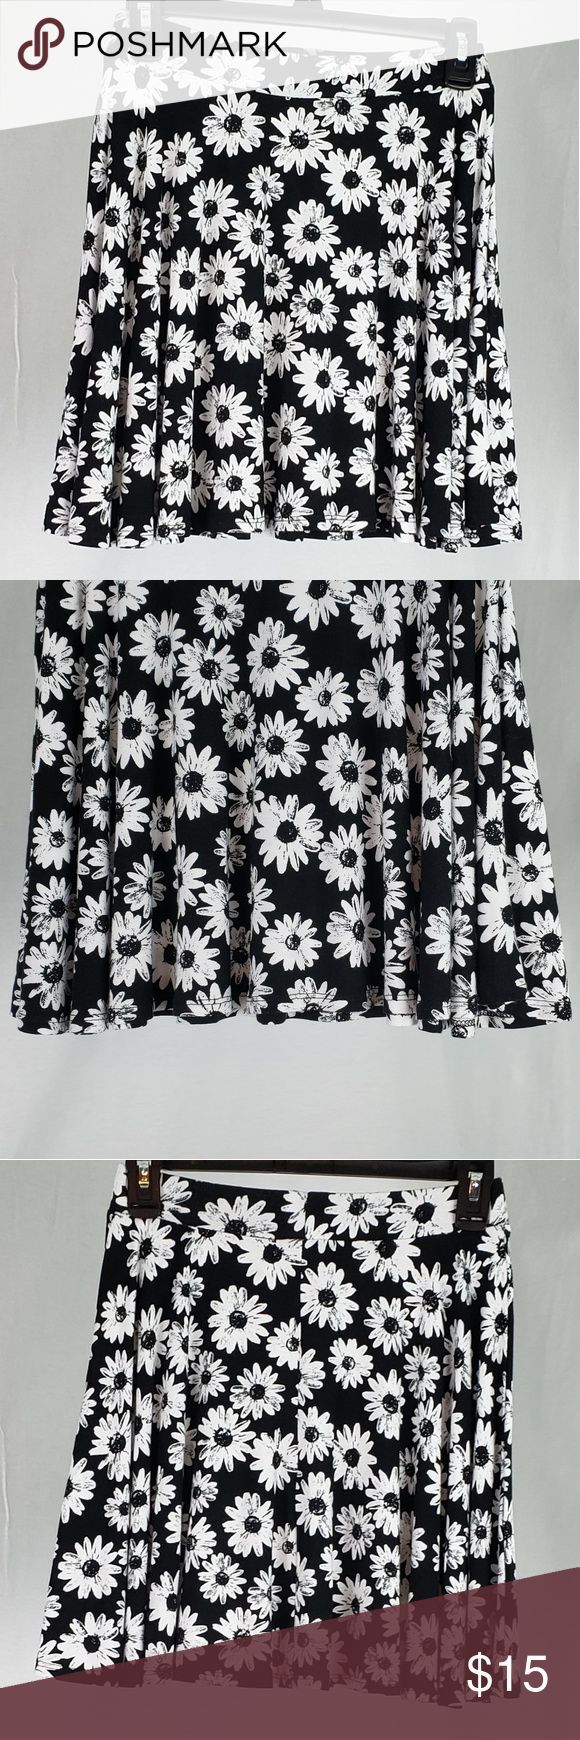 Authentic American Heritage Skater Skirt Black with White Daisy Flowers  Waist -... 1